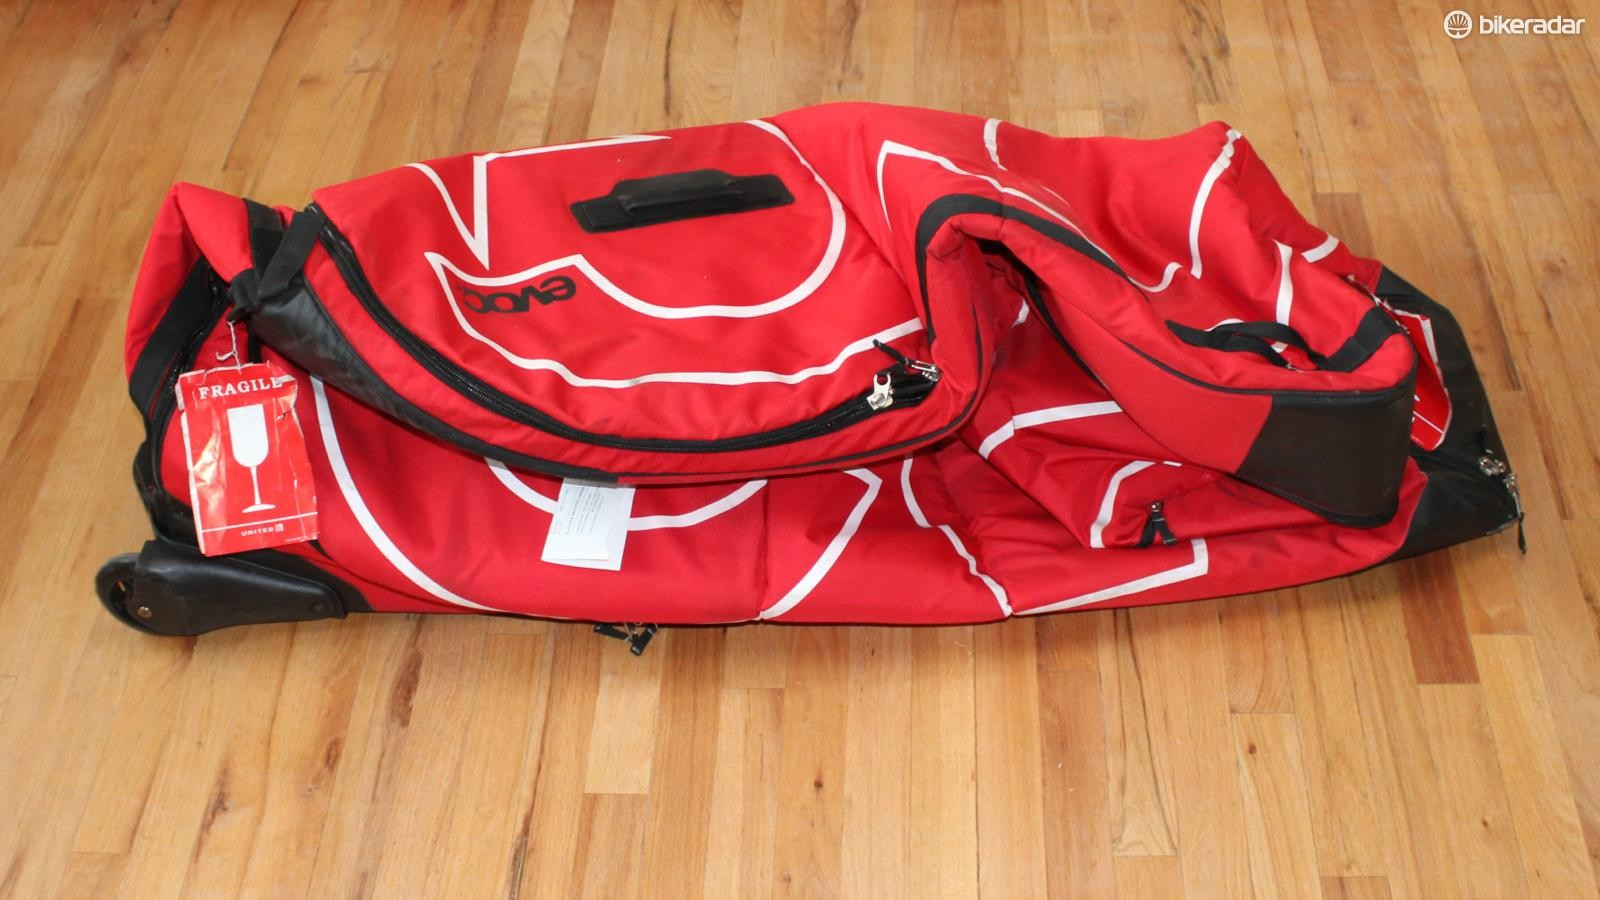 The EVOC Bike Travel Bag folds down nearly flat, which can be handy when traveling — or for storage